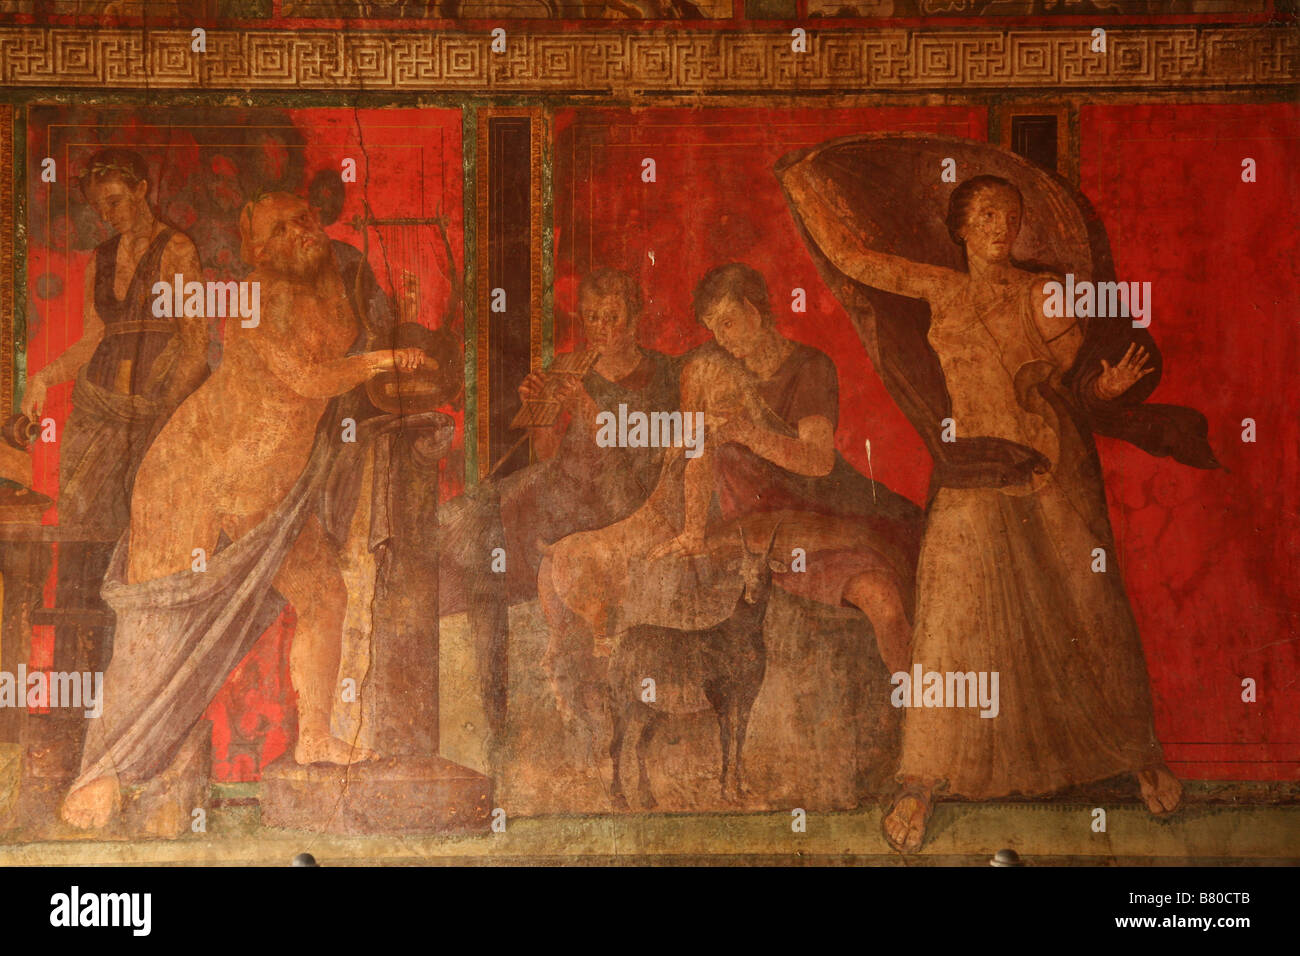 Fresco in the triclinium of the Villa of the Mysteries in Pompeii, Italy. - Stock Image